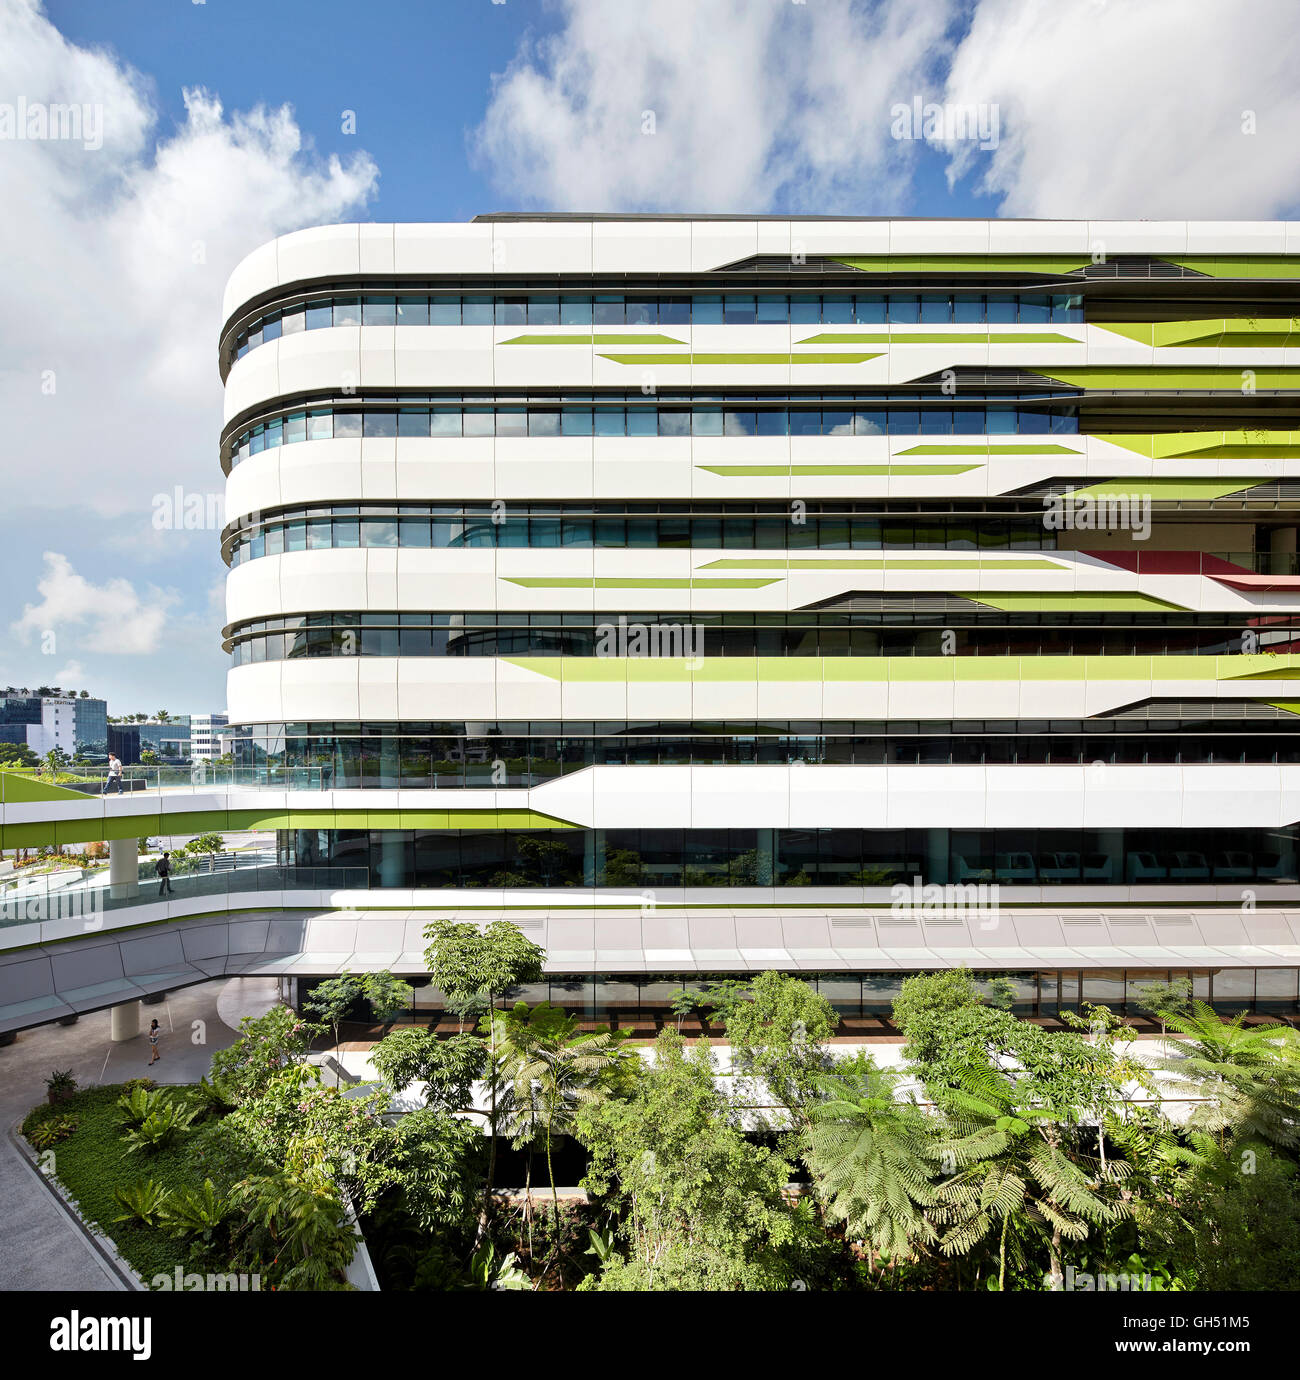 Front Elevation Of Multi-storey Facade With Landscaped